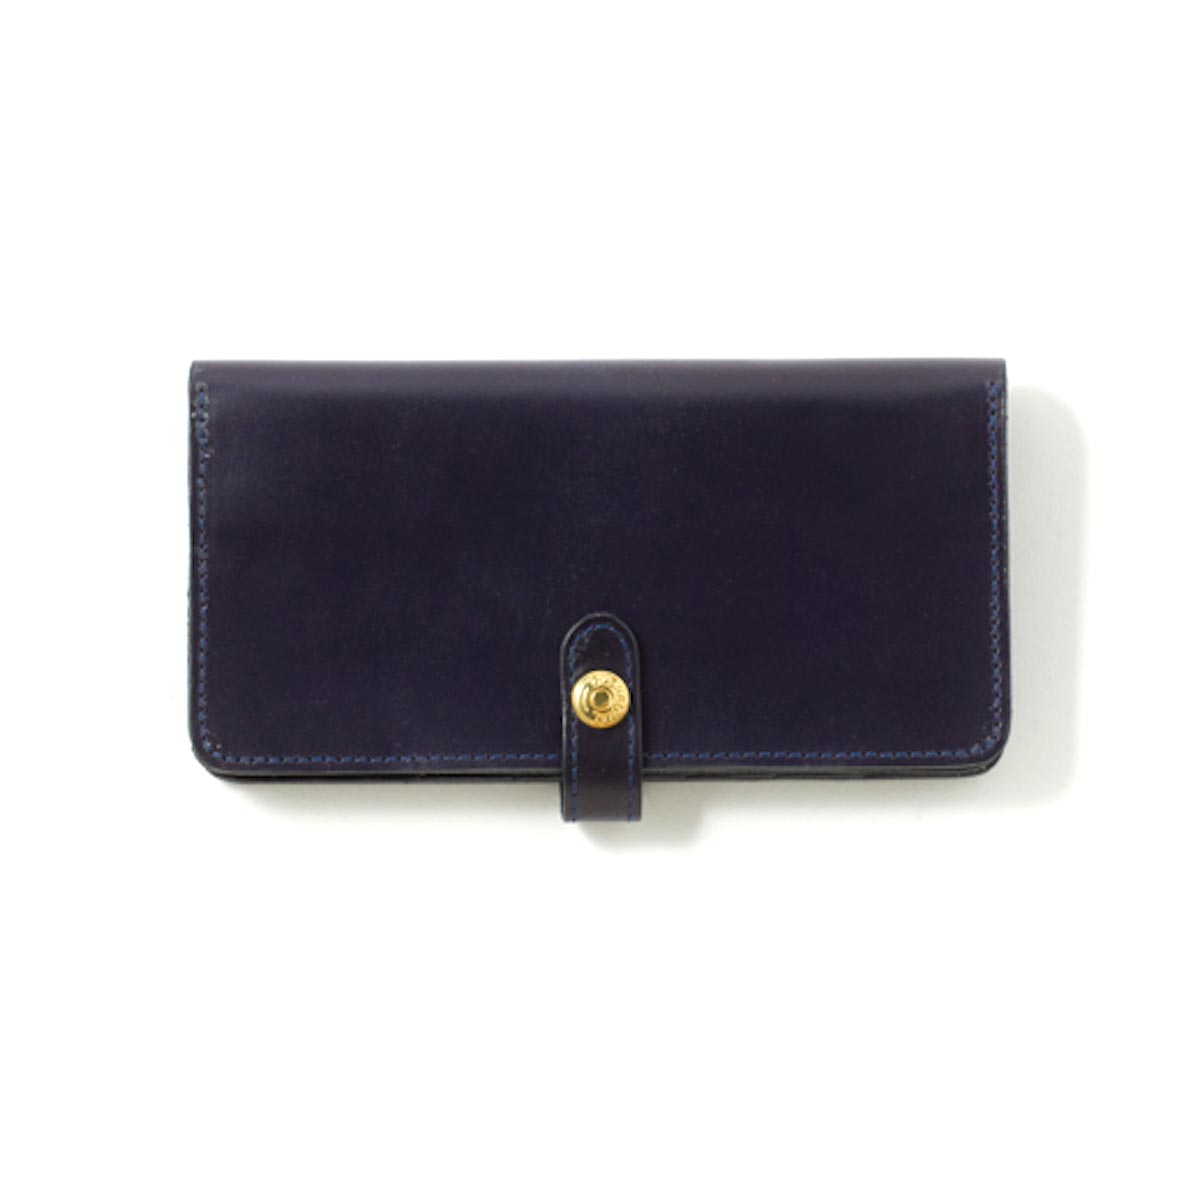 GLEN ROYAL / ROUND LONG PURSE -DARK BLUE